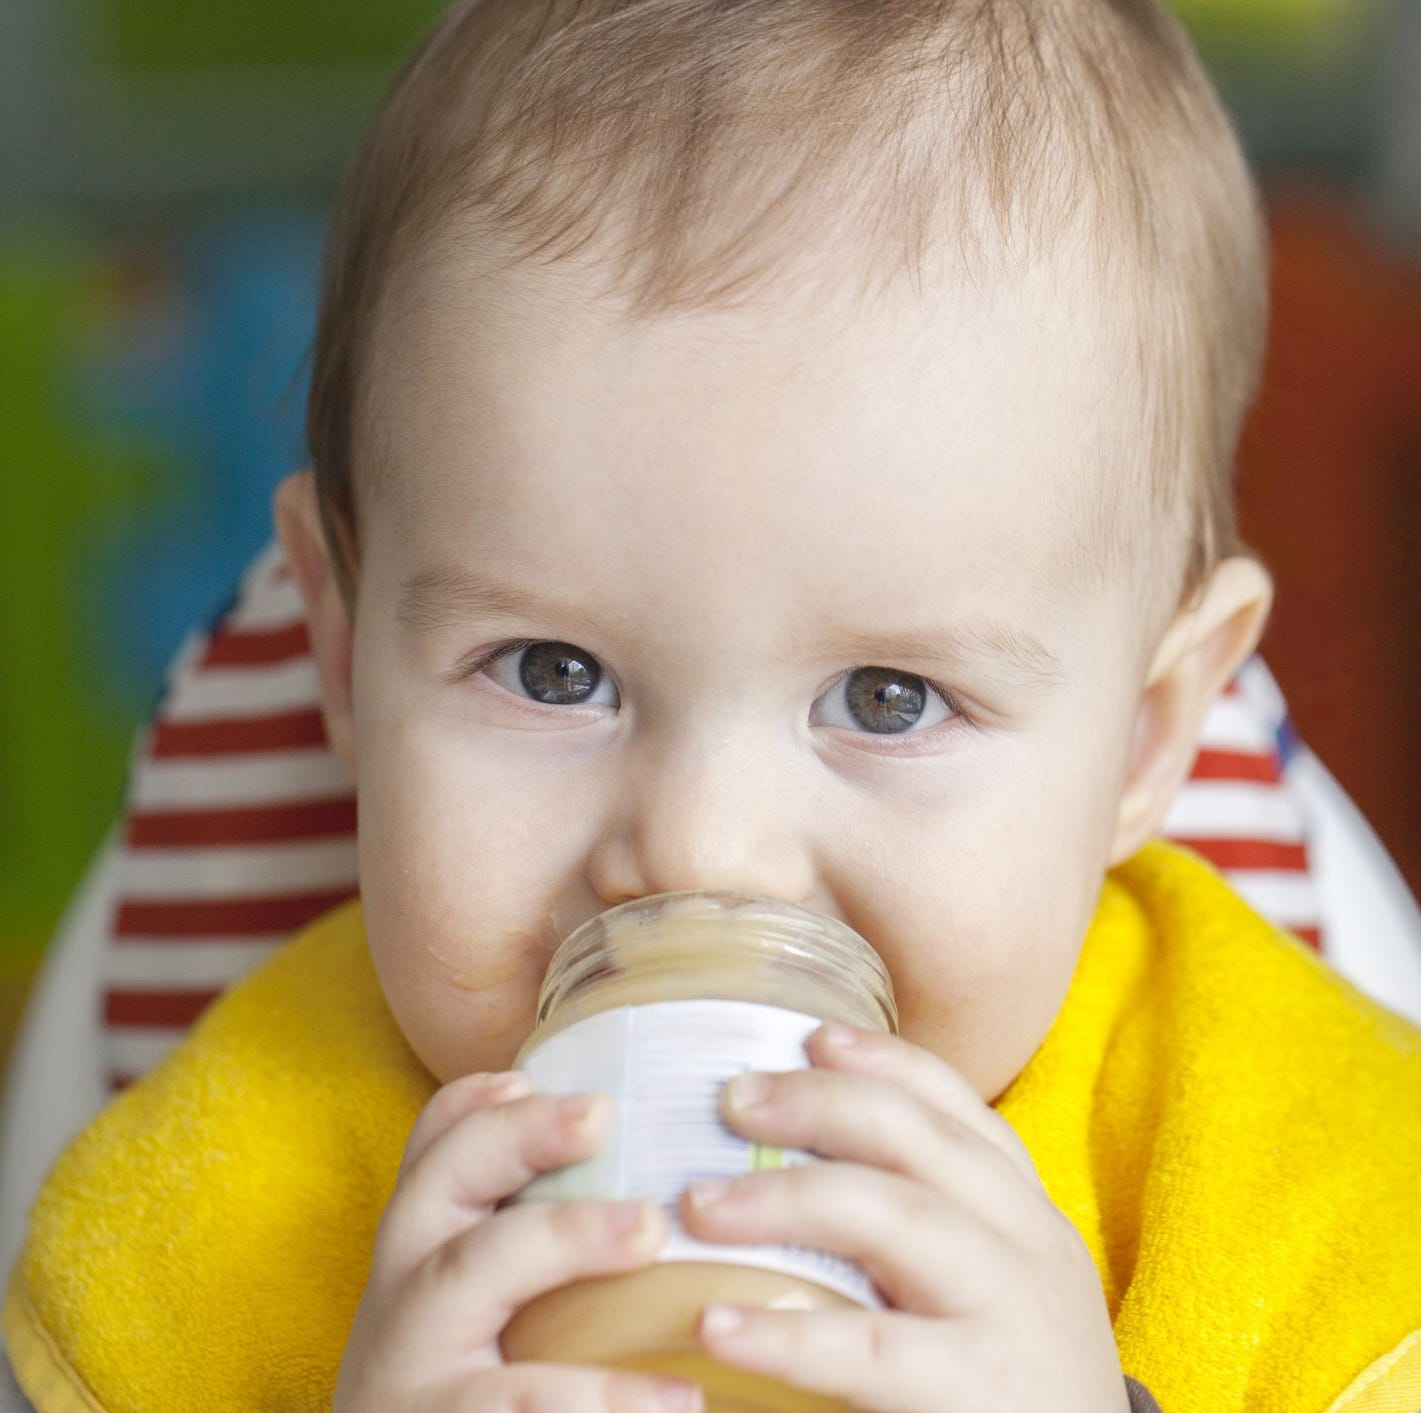 Organic baby food is as likely as conventional foods to have heavy metals, Consumer Reports found